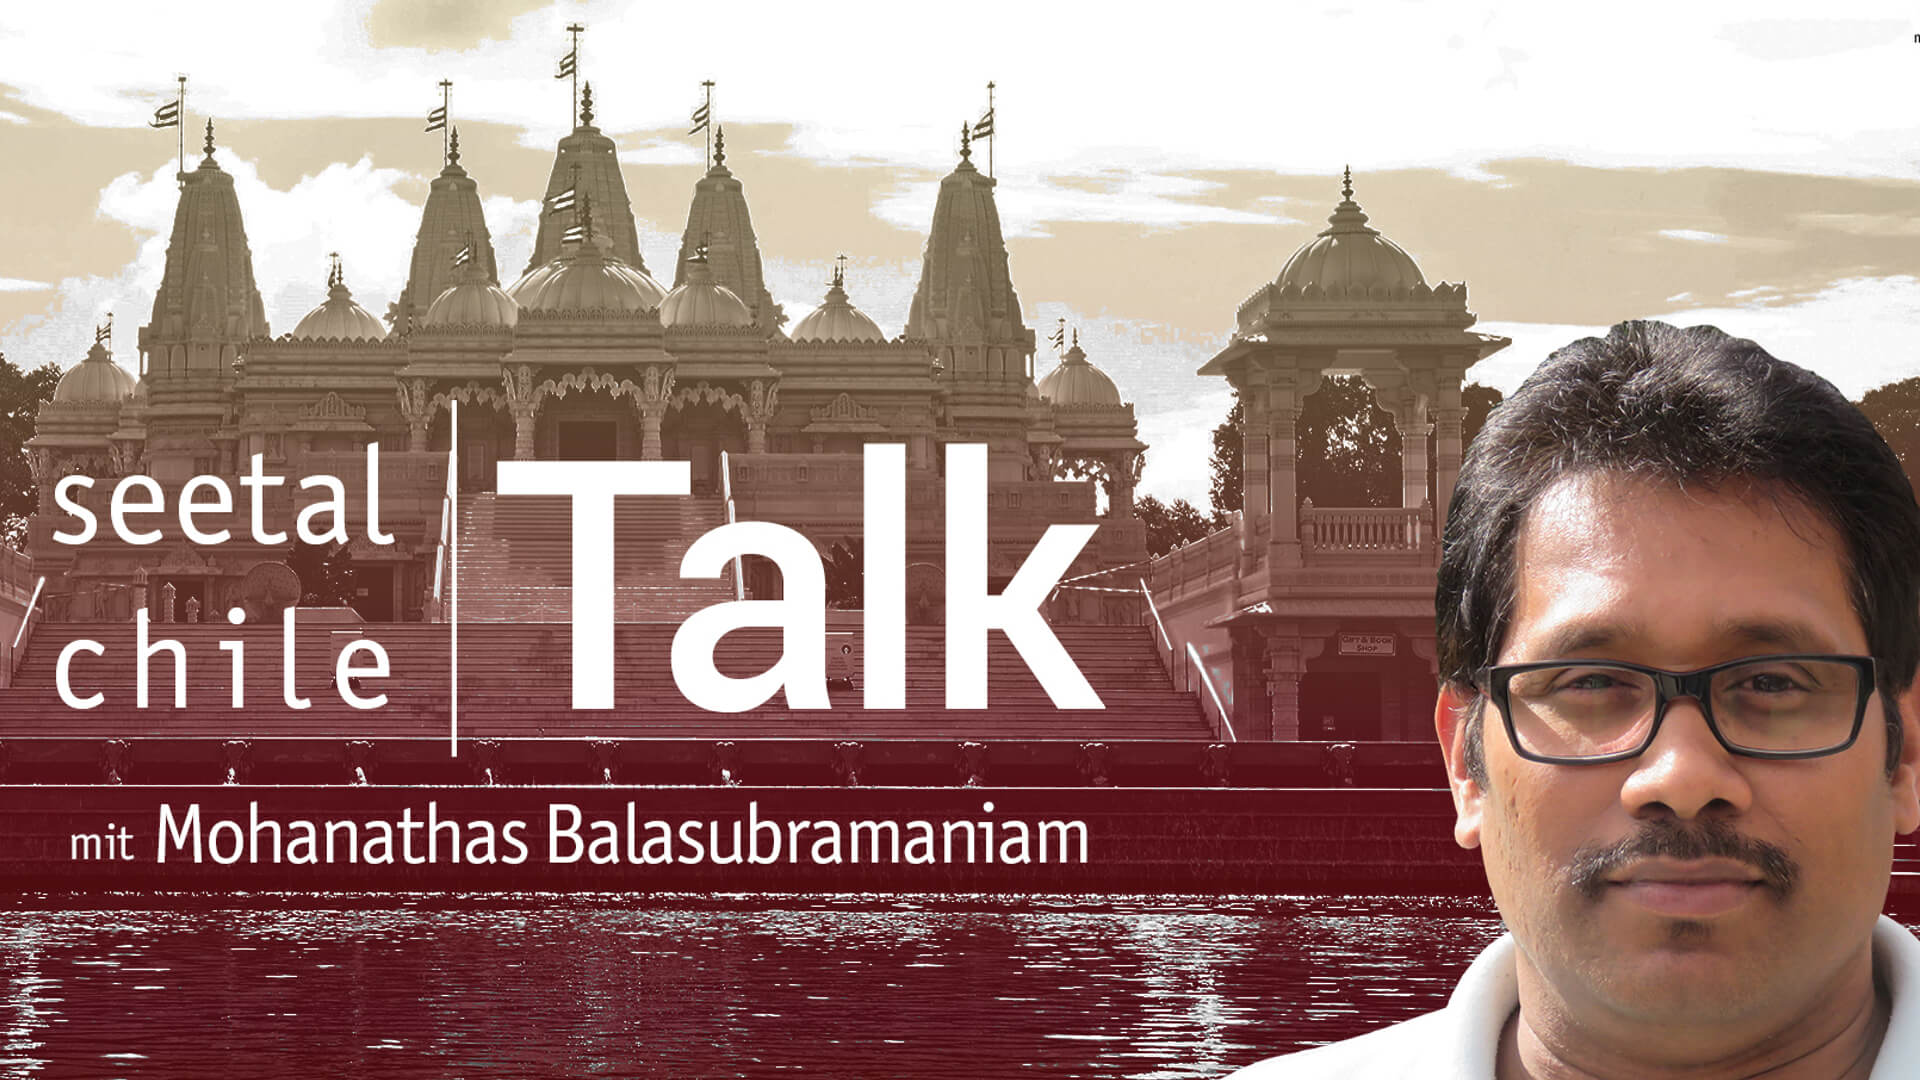 https://sermons.seetal-chile.ch/wp-content/uploads/sermons/2018/11/seetal-chile-Talk_Mohanathas-Balasubramaniam.jpg